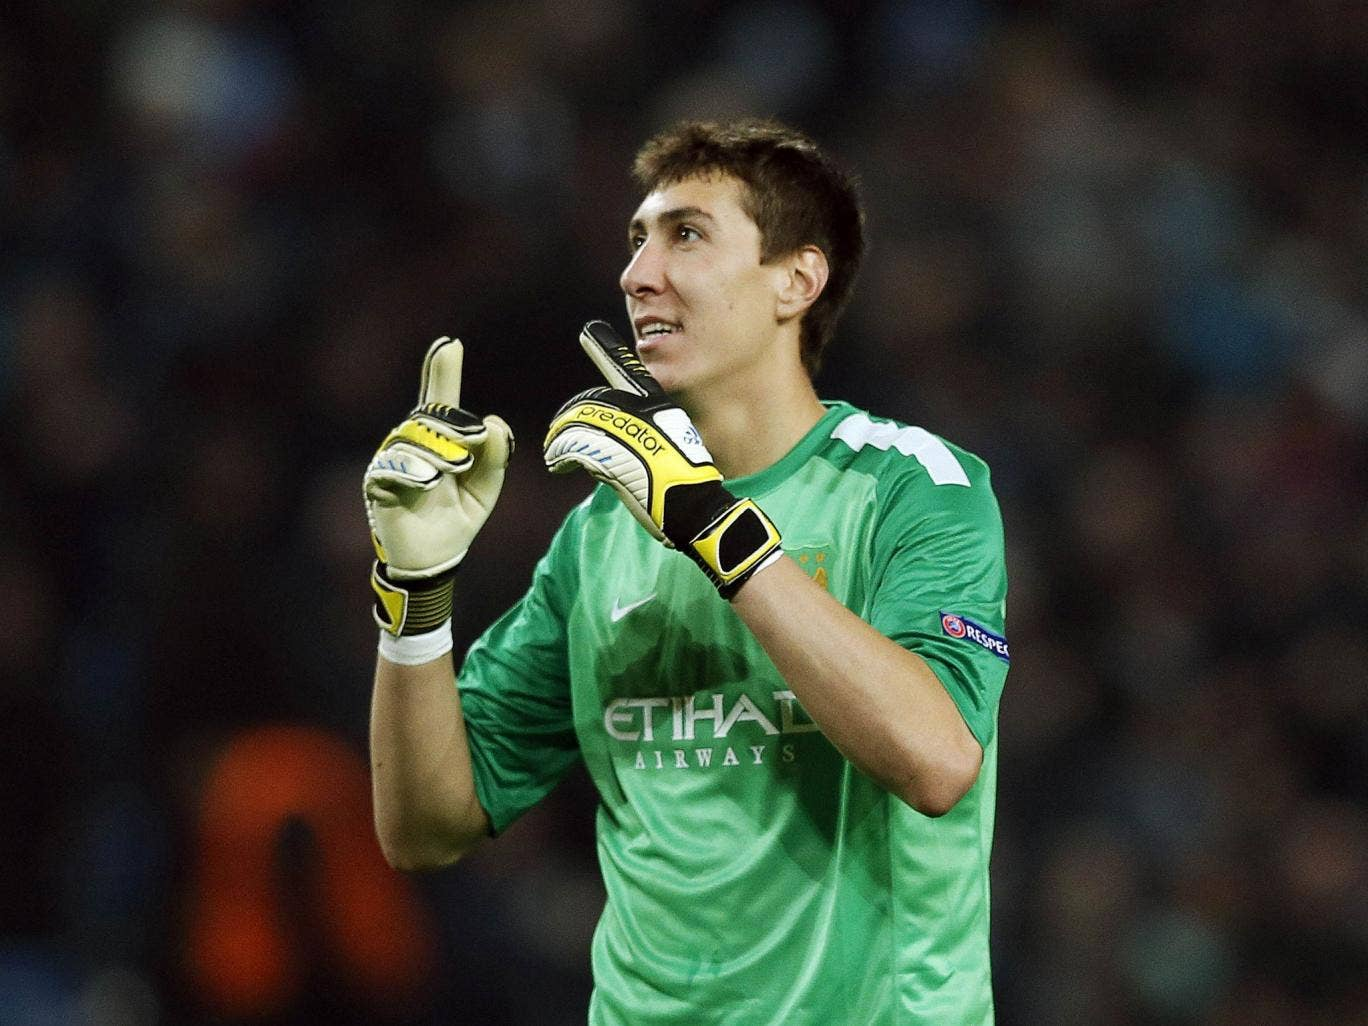 Costel Pantilimon is starting for City at Sunderland